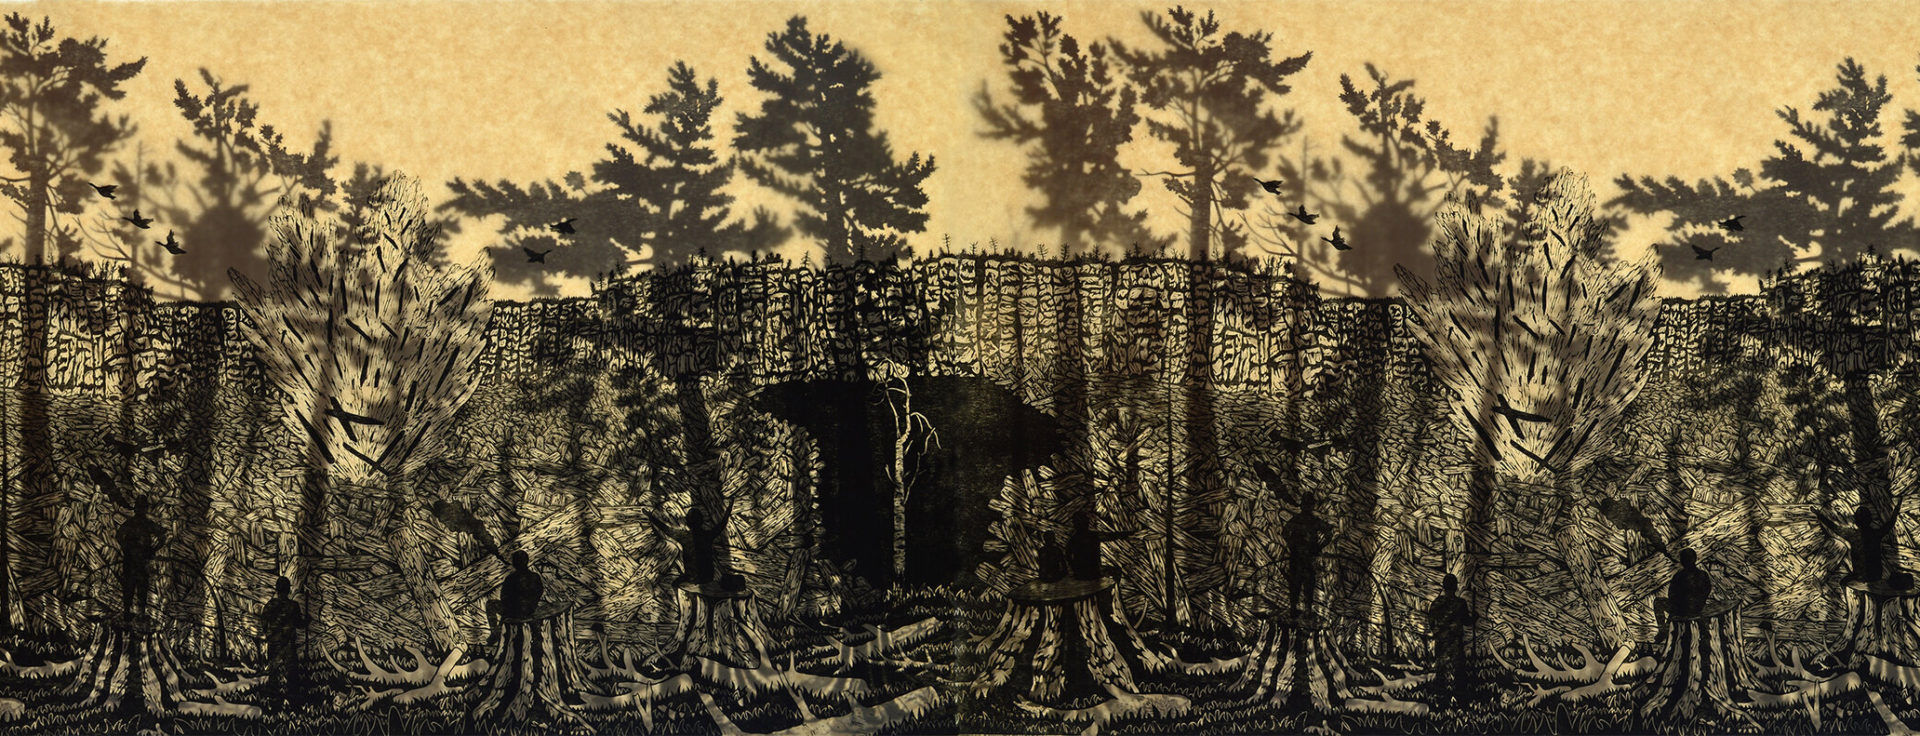 The Late Great Pine Forests & Death by a Billion Cuts, a wood cut by of trees